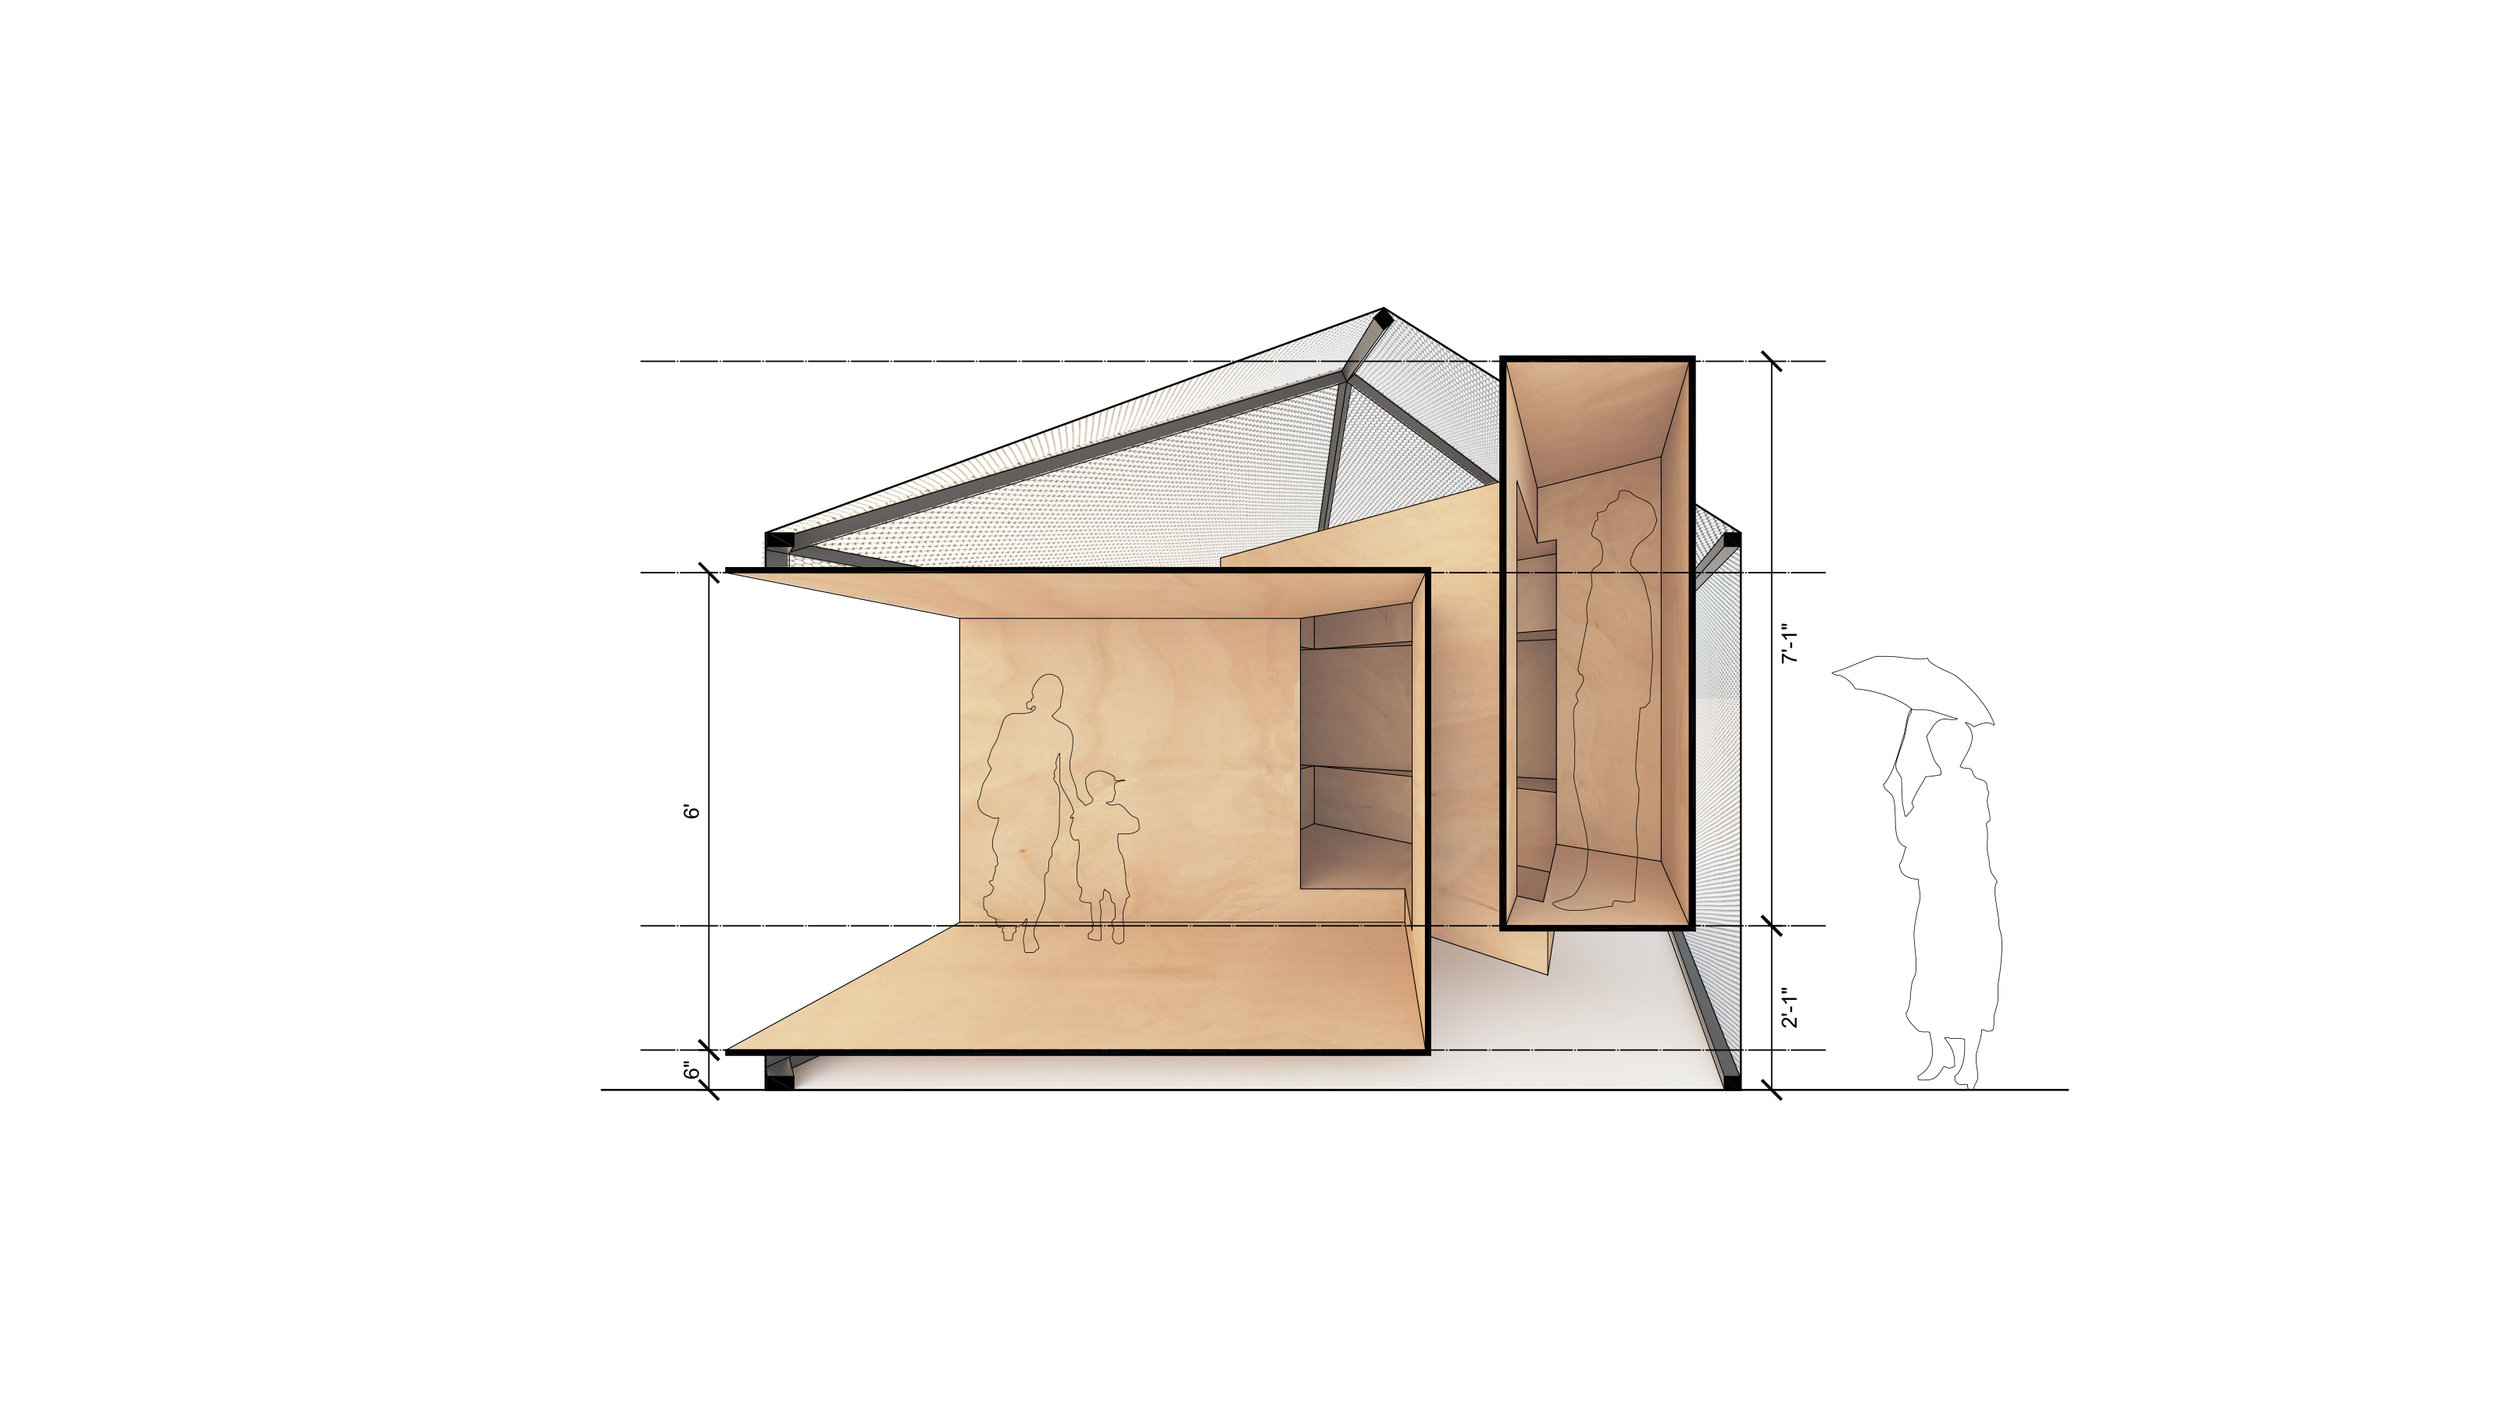 MTAD_SEATTLE DESIGN GRANT_SECTION 01.jpg